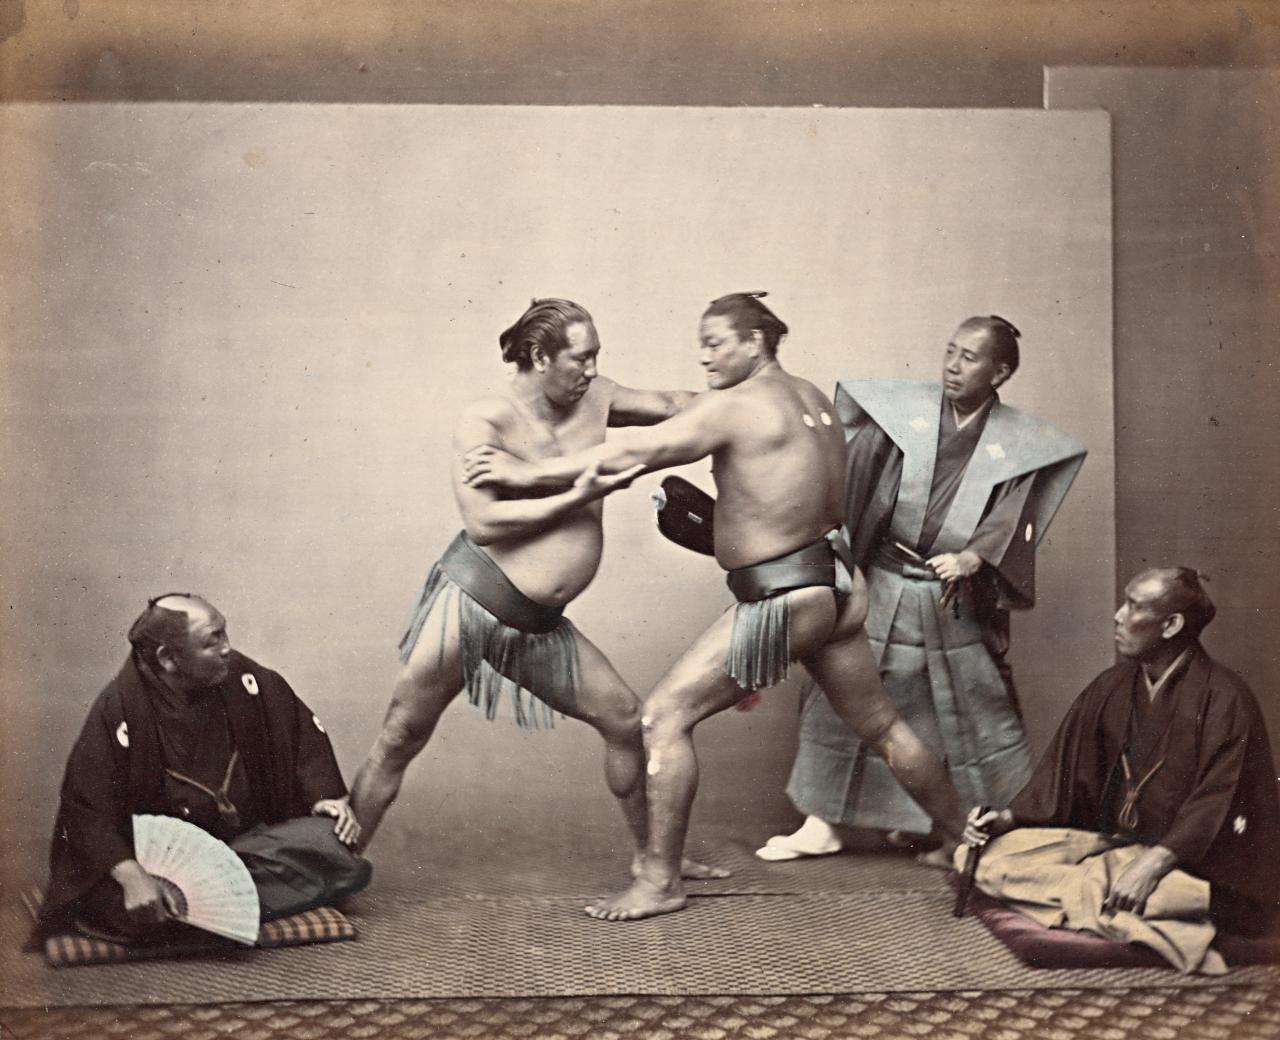 No title (Sumo wrestlers and umpire)